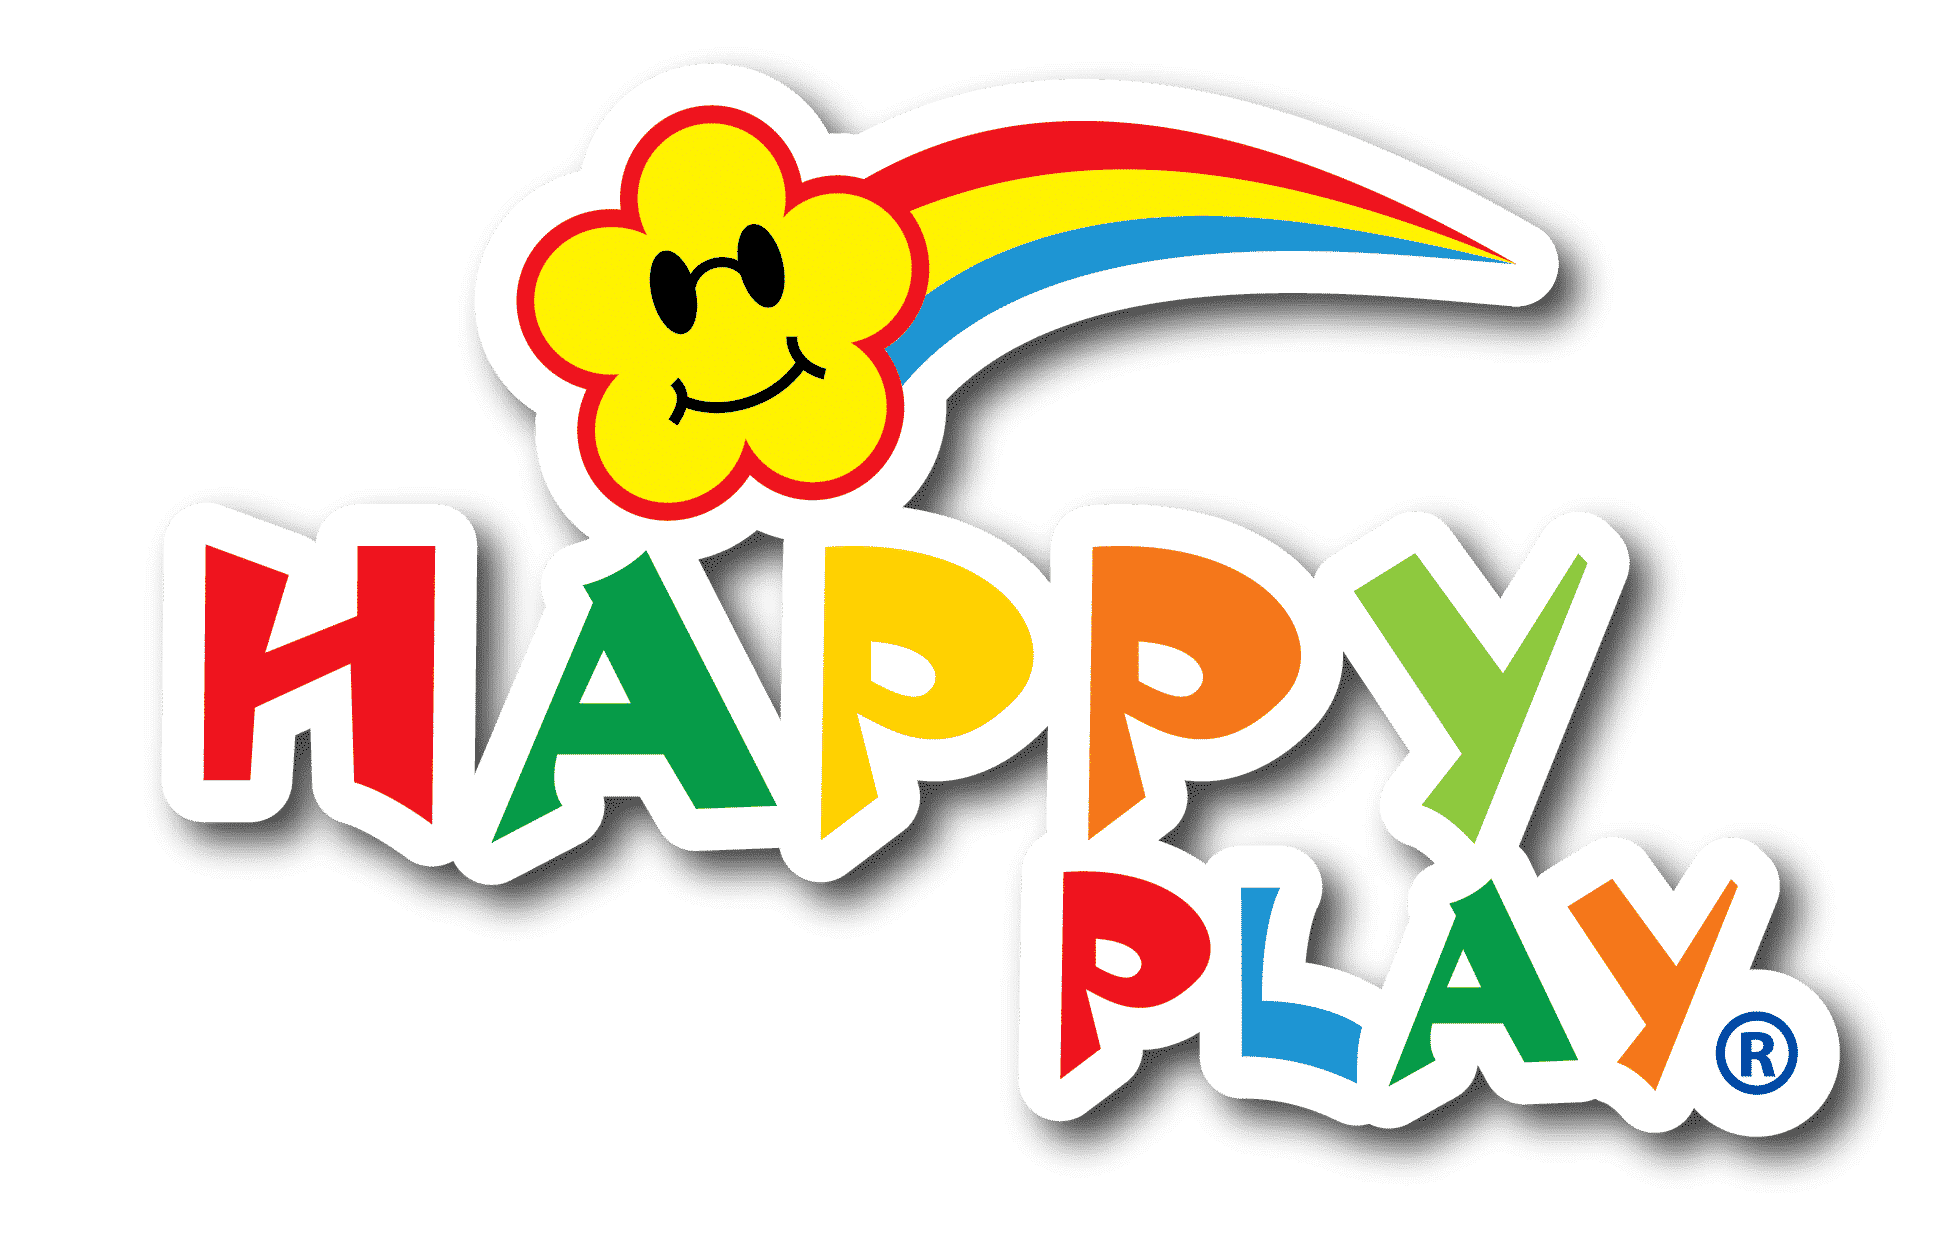 LOGO HAPPY PLAY WEB